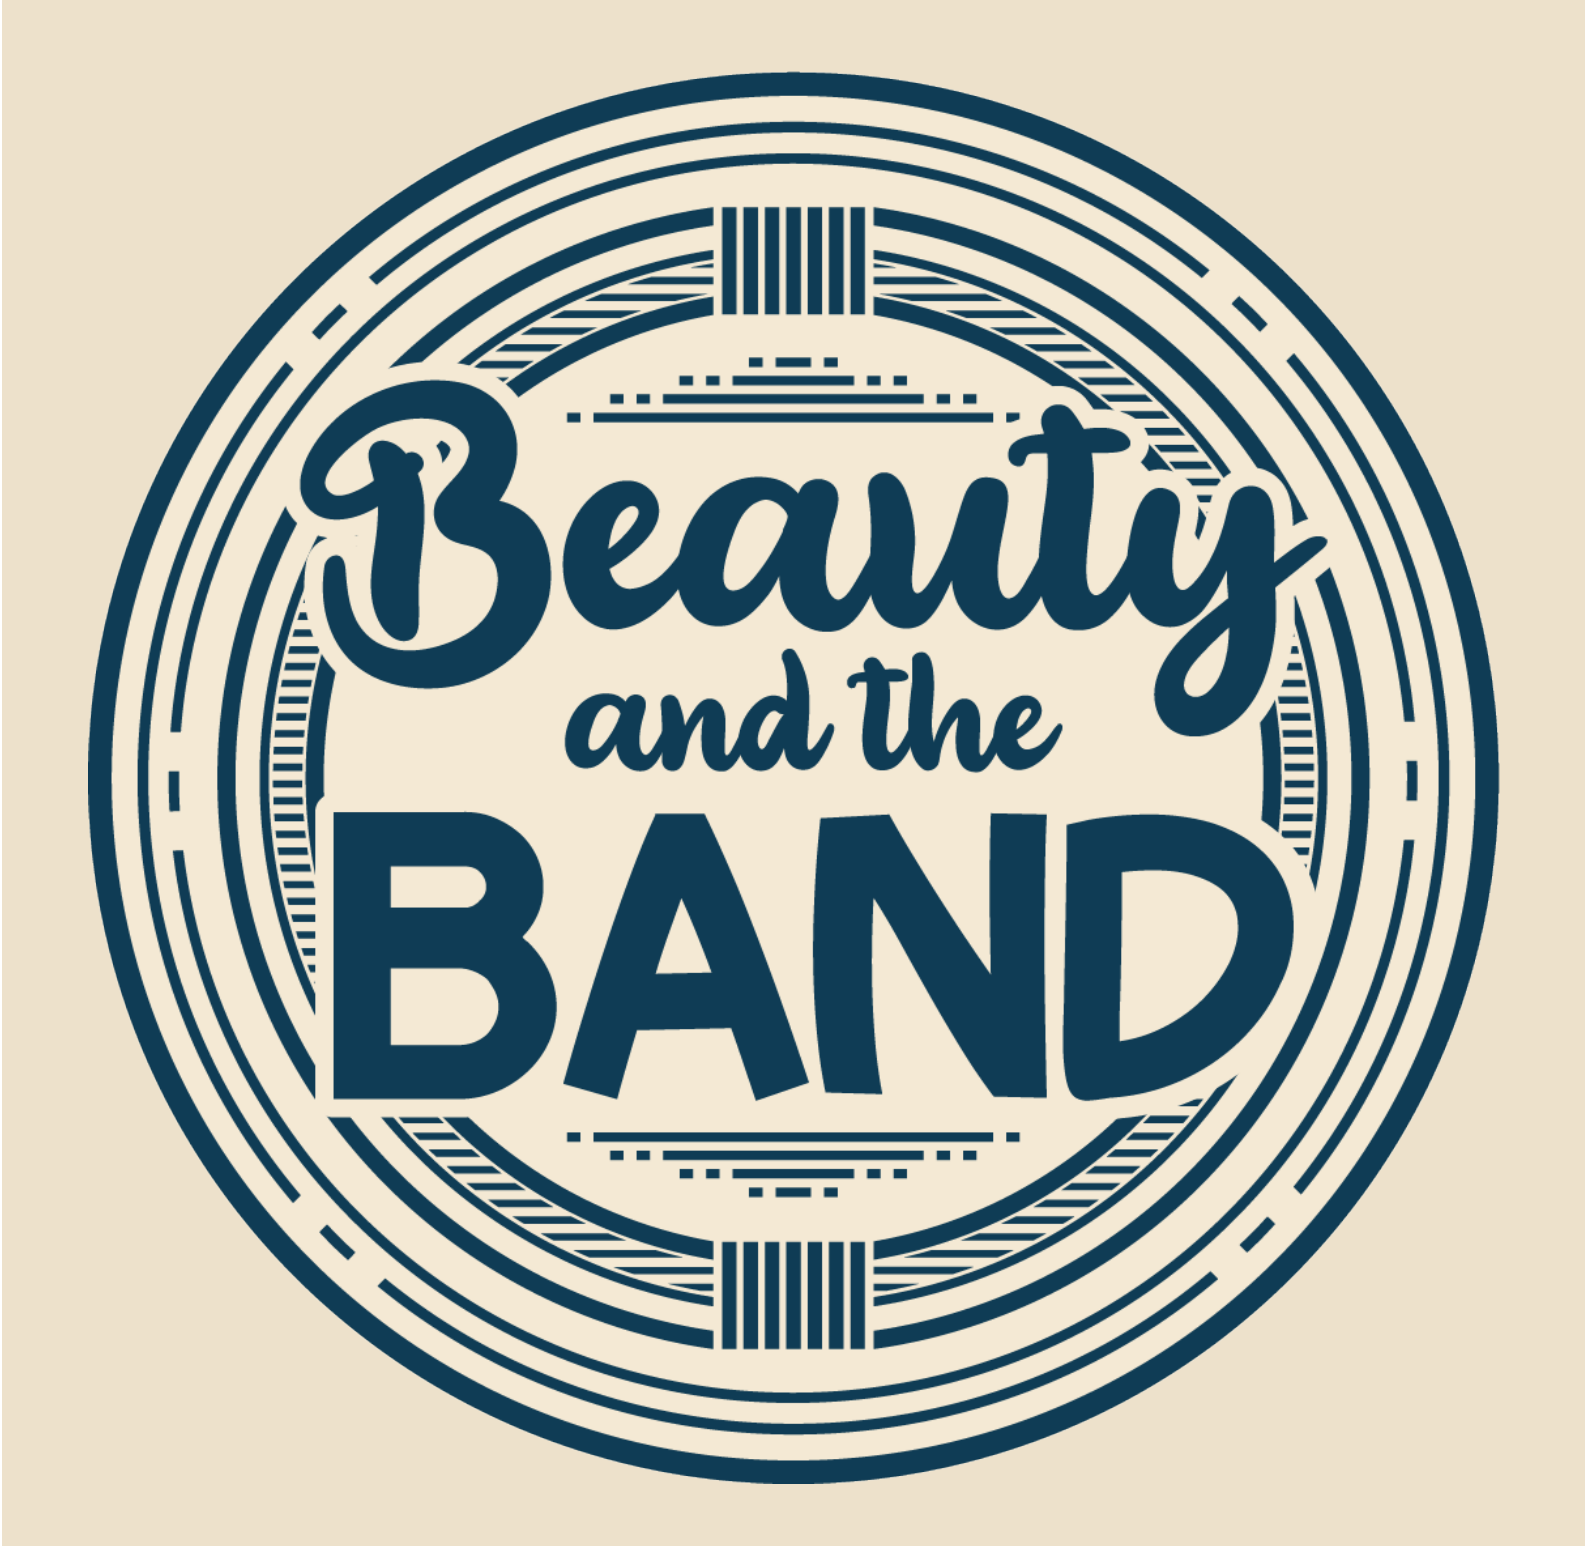 Beauty and the Band